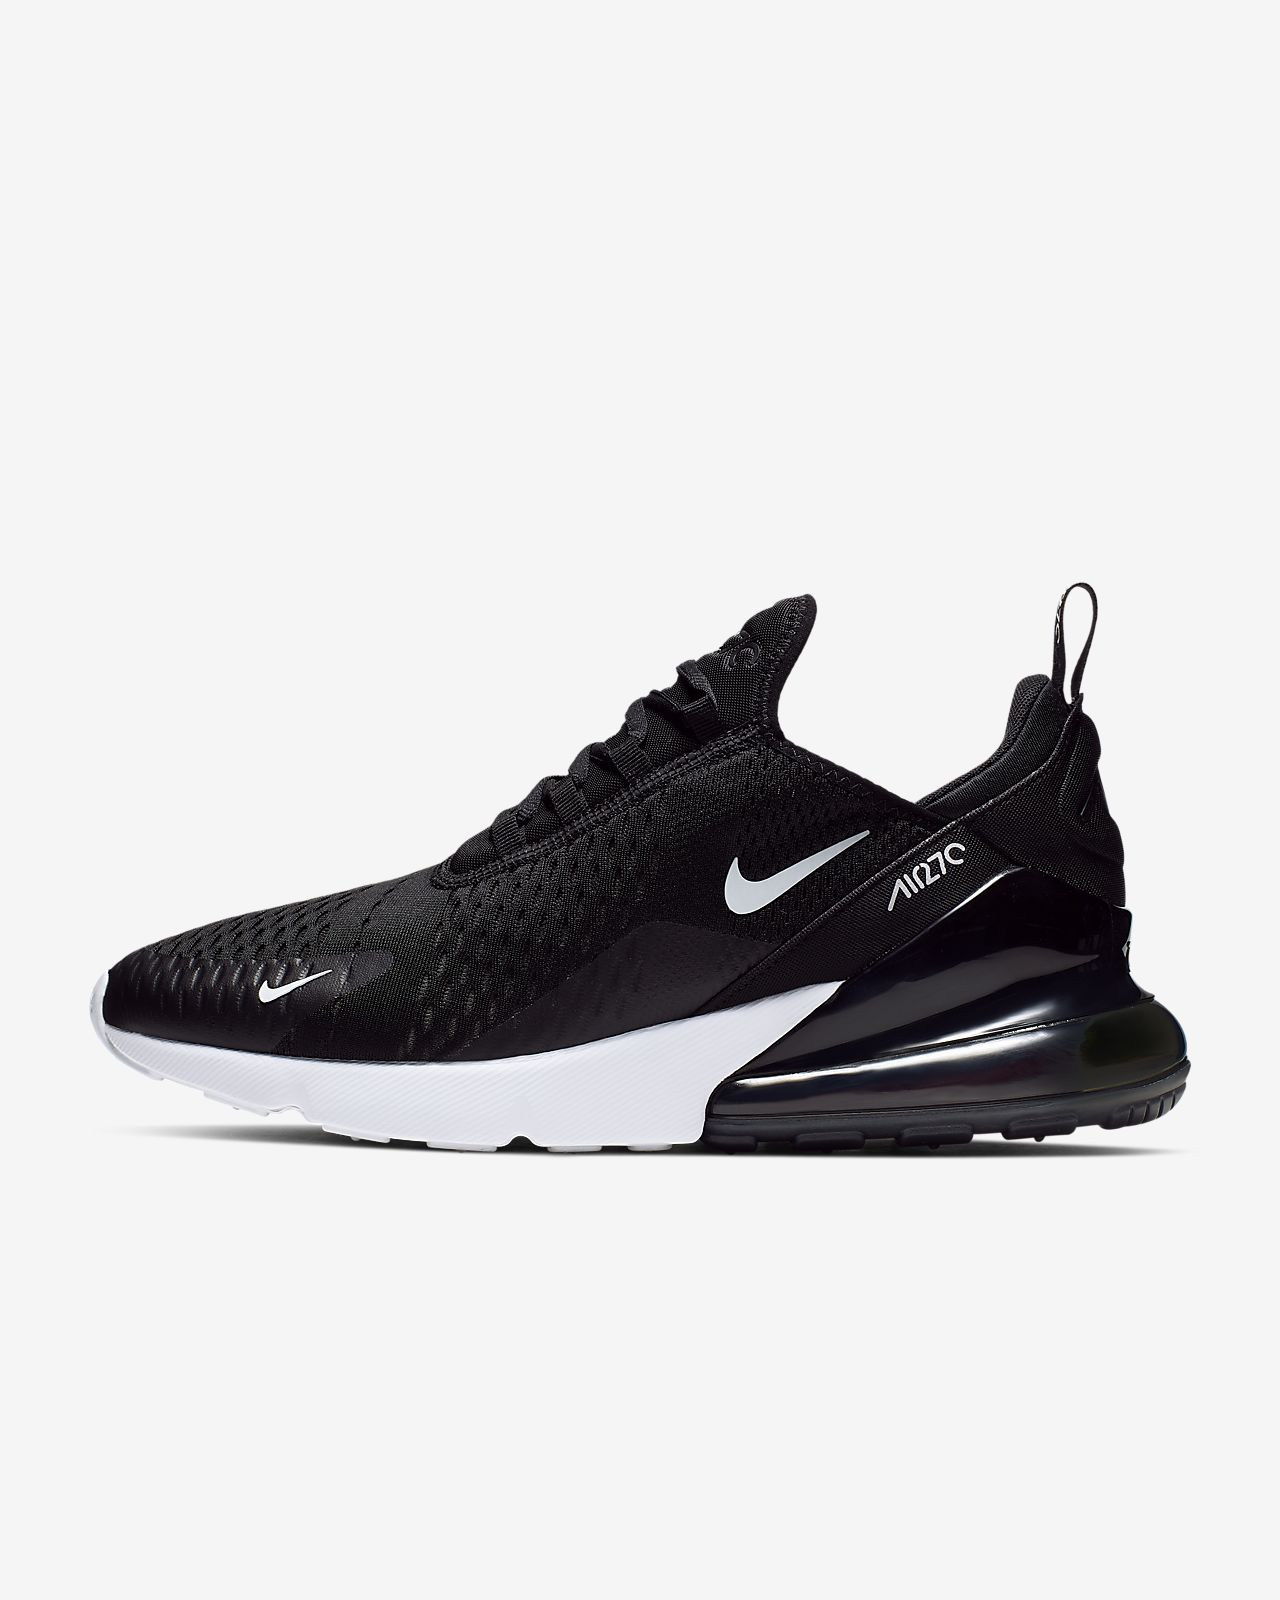 43d00d6fbc05e Nike Air Max 270 Men s Shoe. Nike.com LU